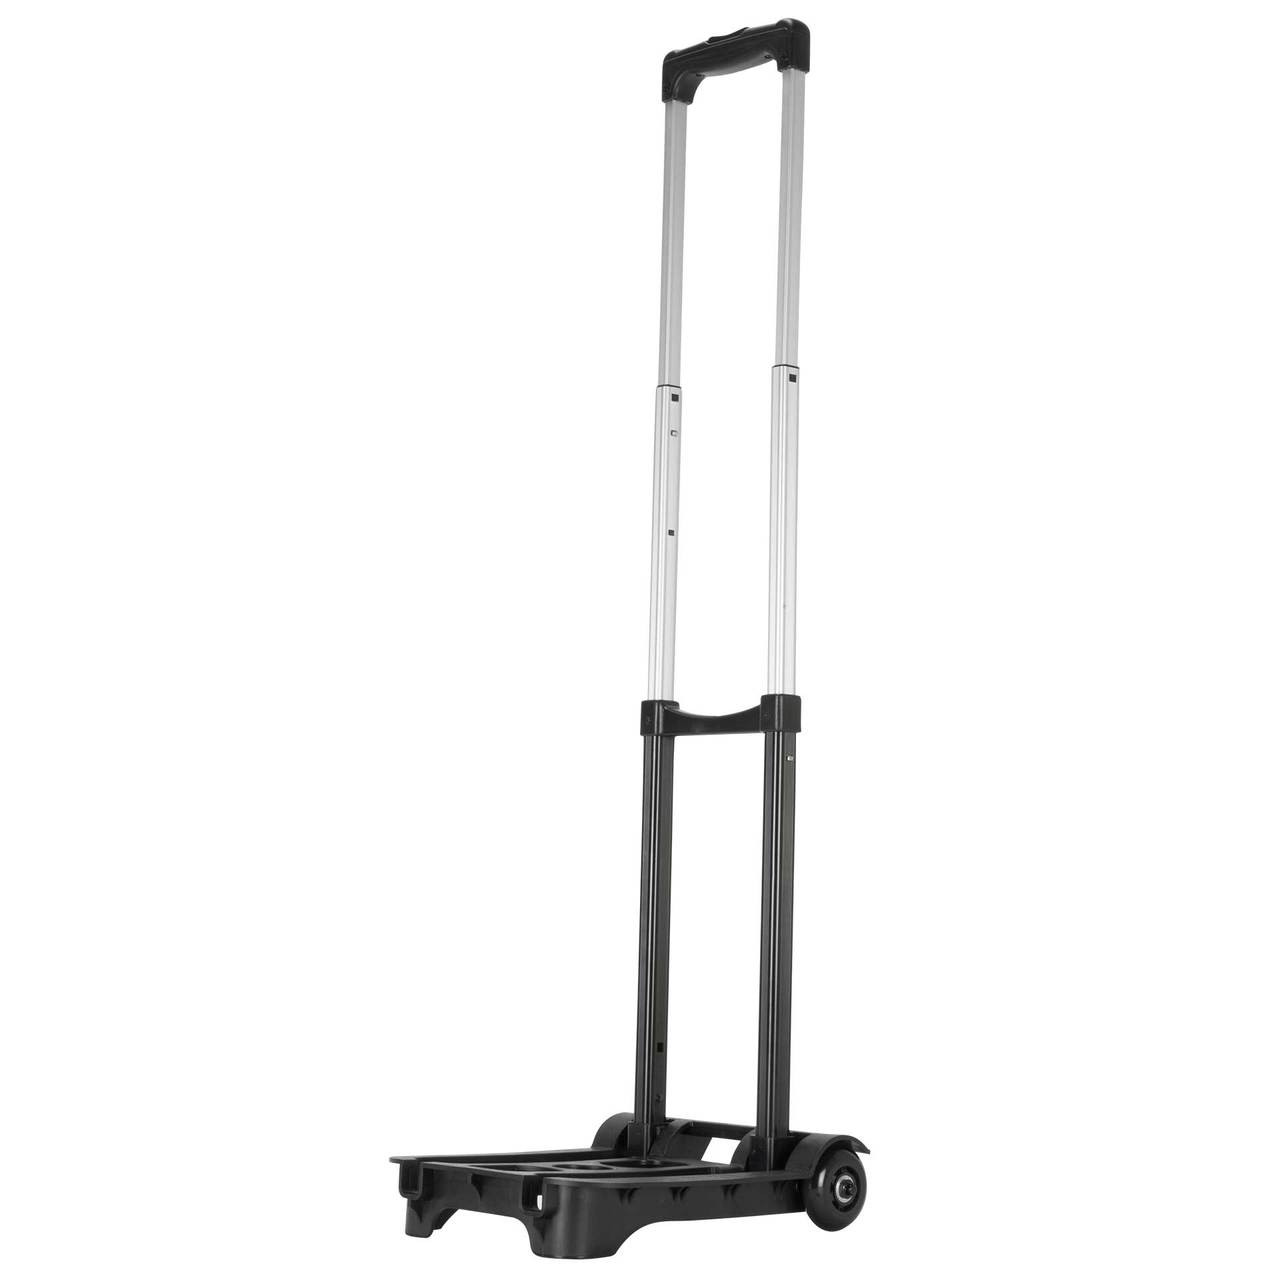 RCF EVOX Trolley Portable Two-Wheel Trolley For EVOX 5 And EVOX 8 System